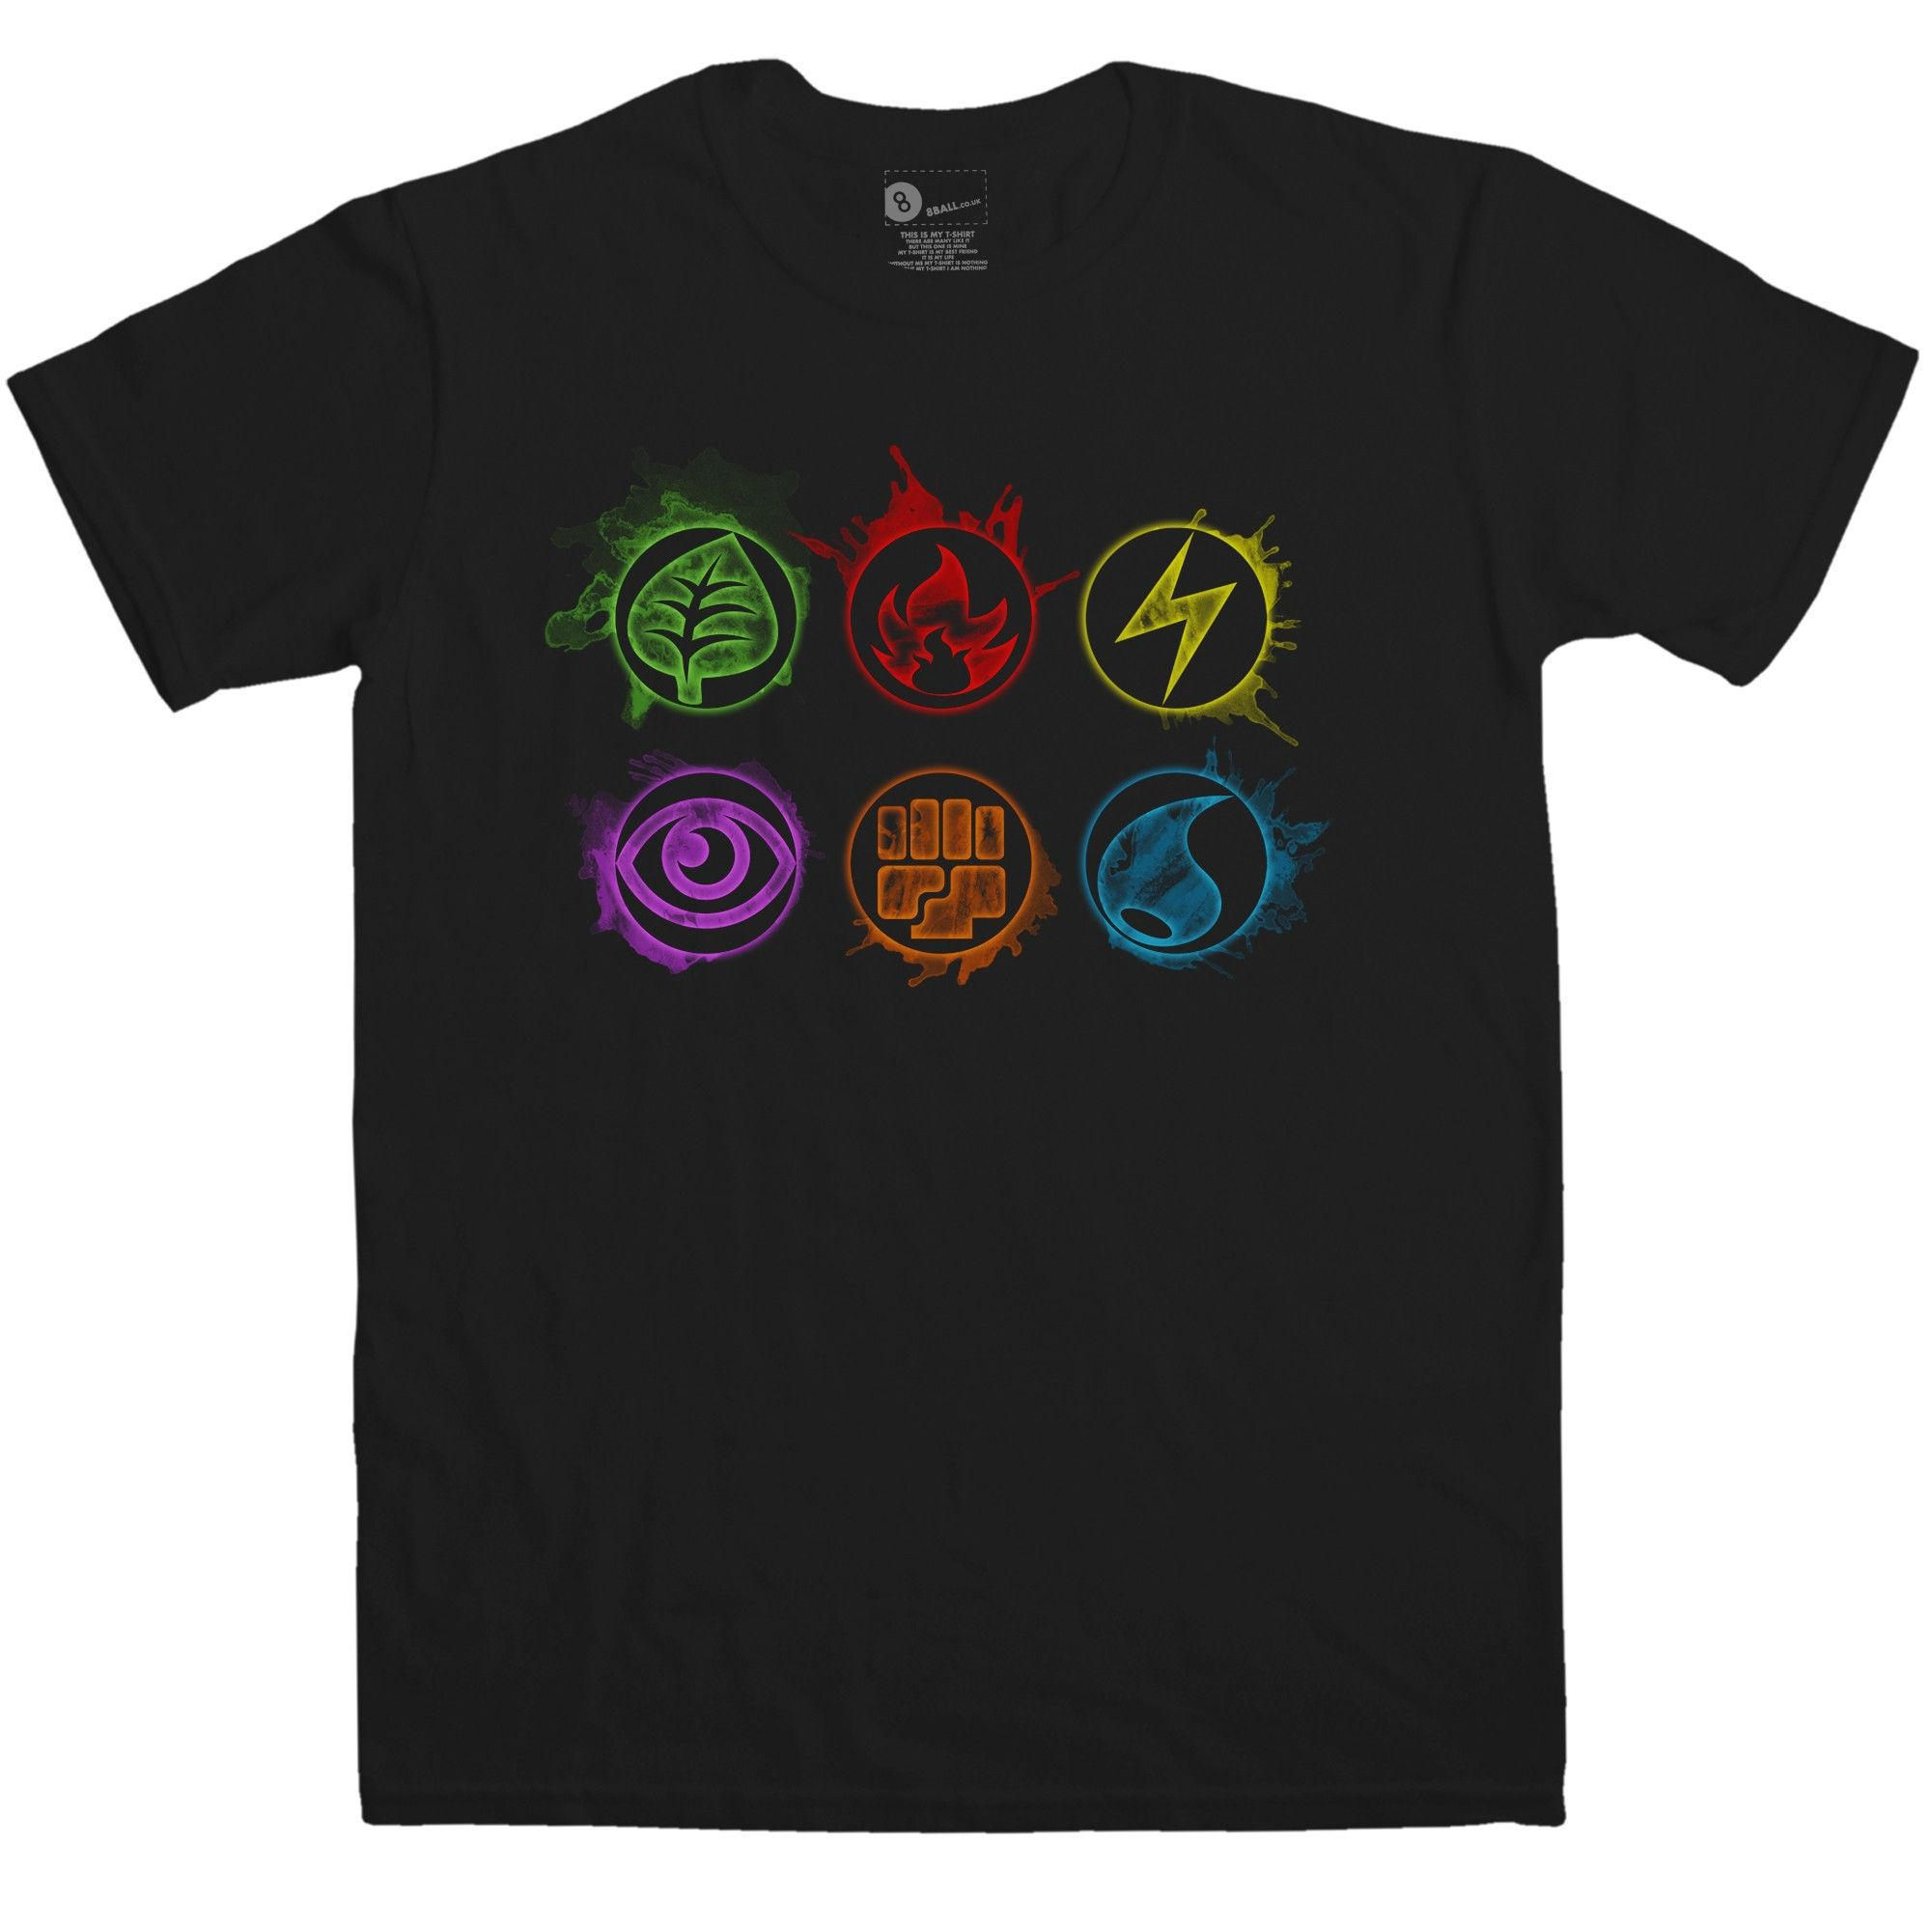 Inspired by pokemon t shirt energy card symbols pokmon and symbols inspired by pokemon t shirt energy card symbols buycottarizona Gallery